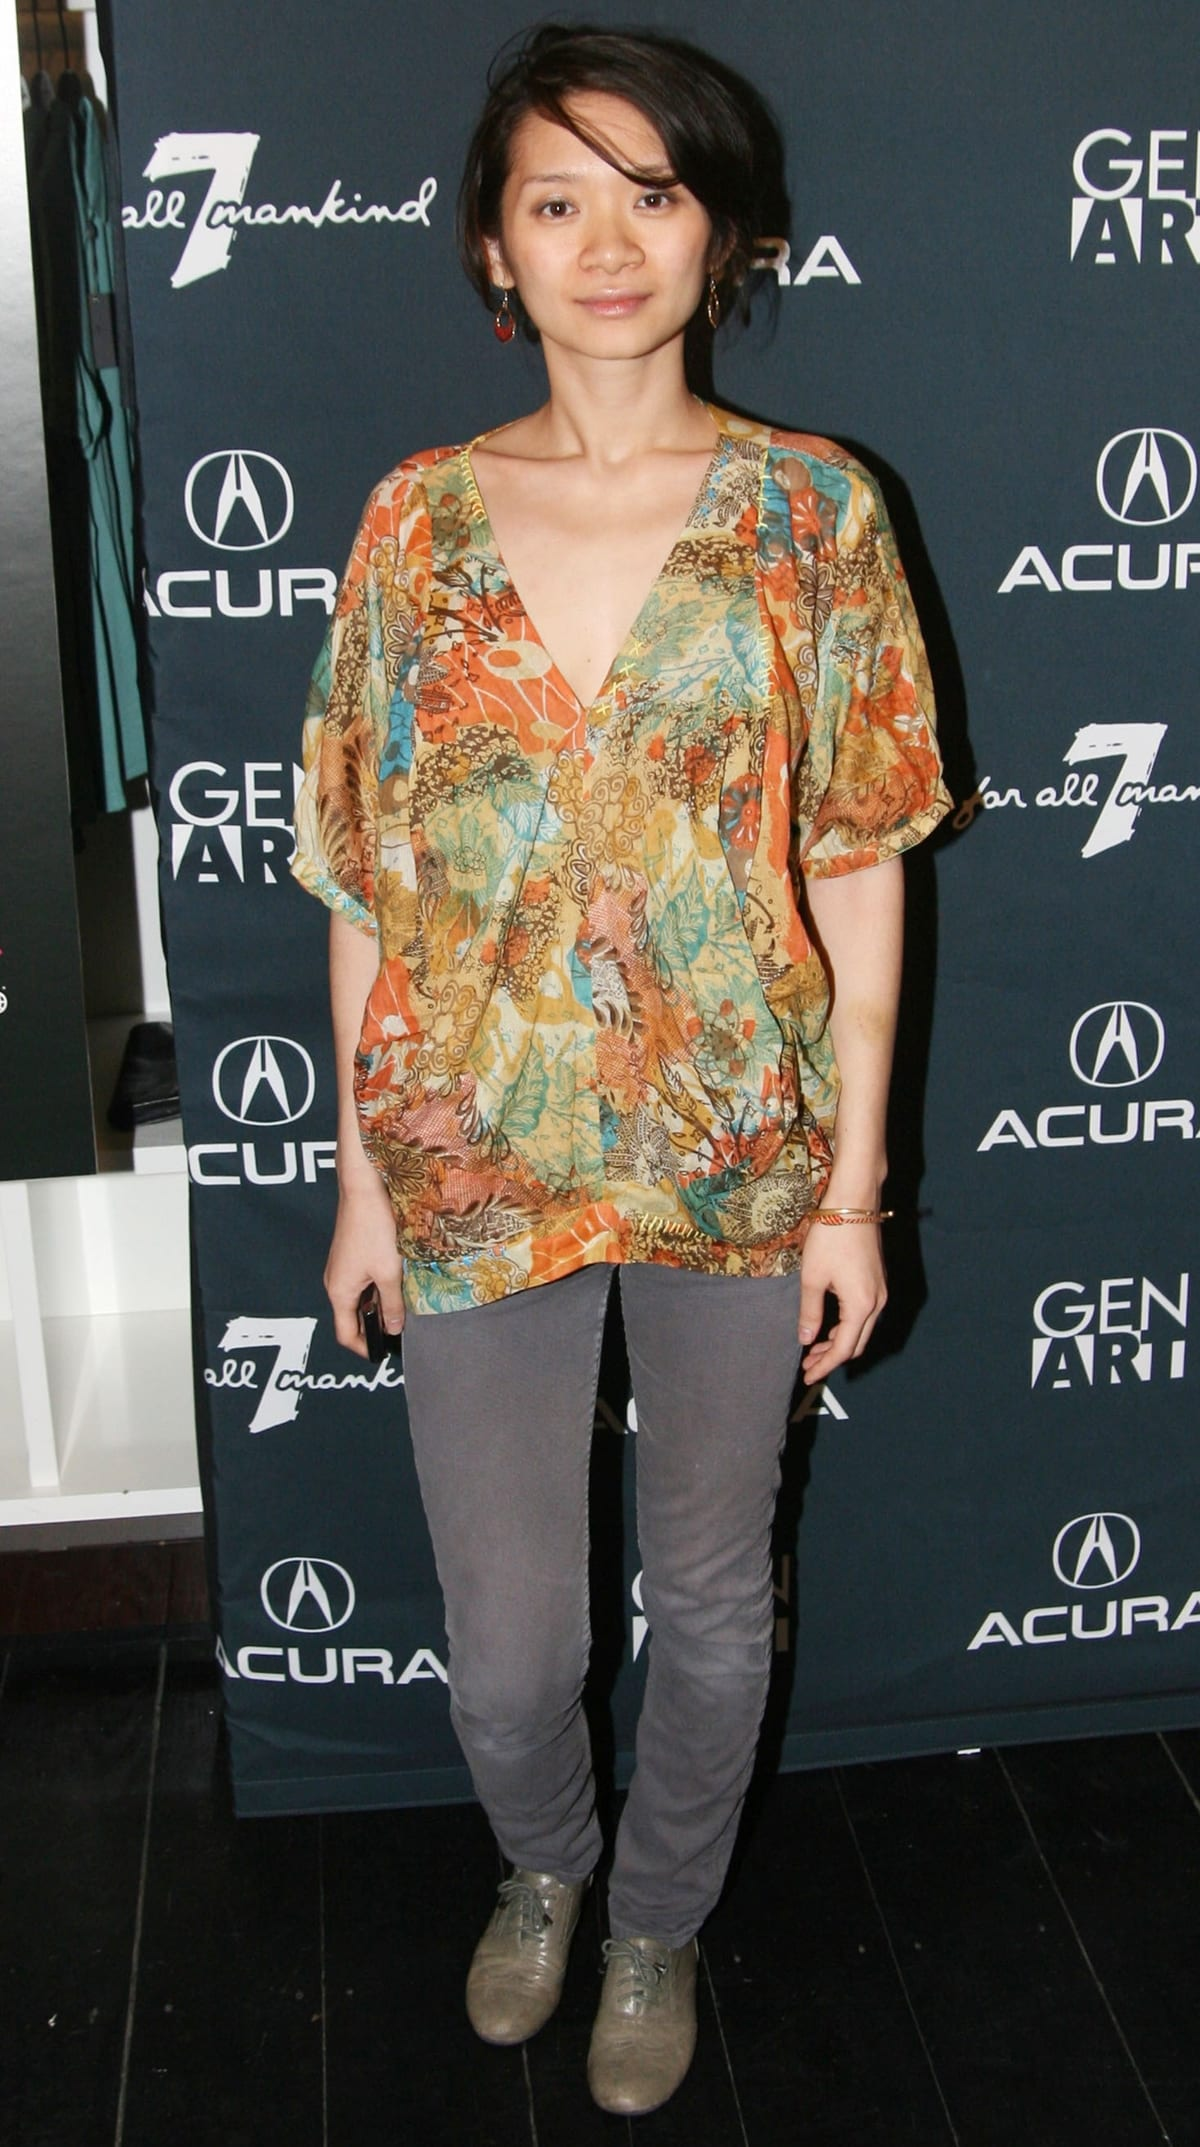 Born on March 31, 1982, in Beijing, China, Chloé Zhao celebrated her 28th birthday when attending the launch party for the 15th Anniversary of the Gen Art Film Festival